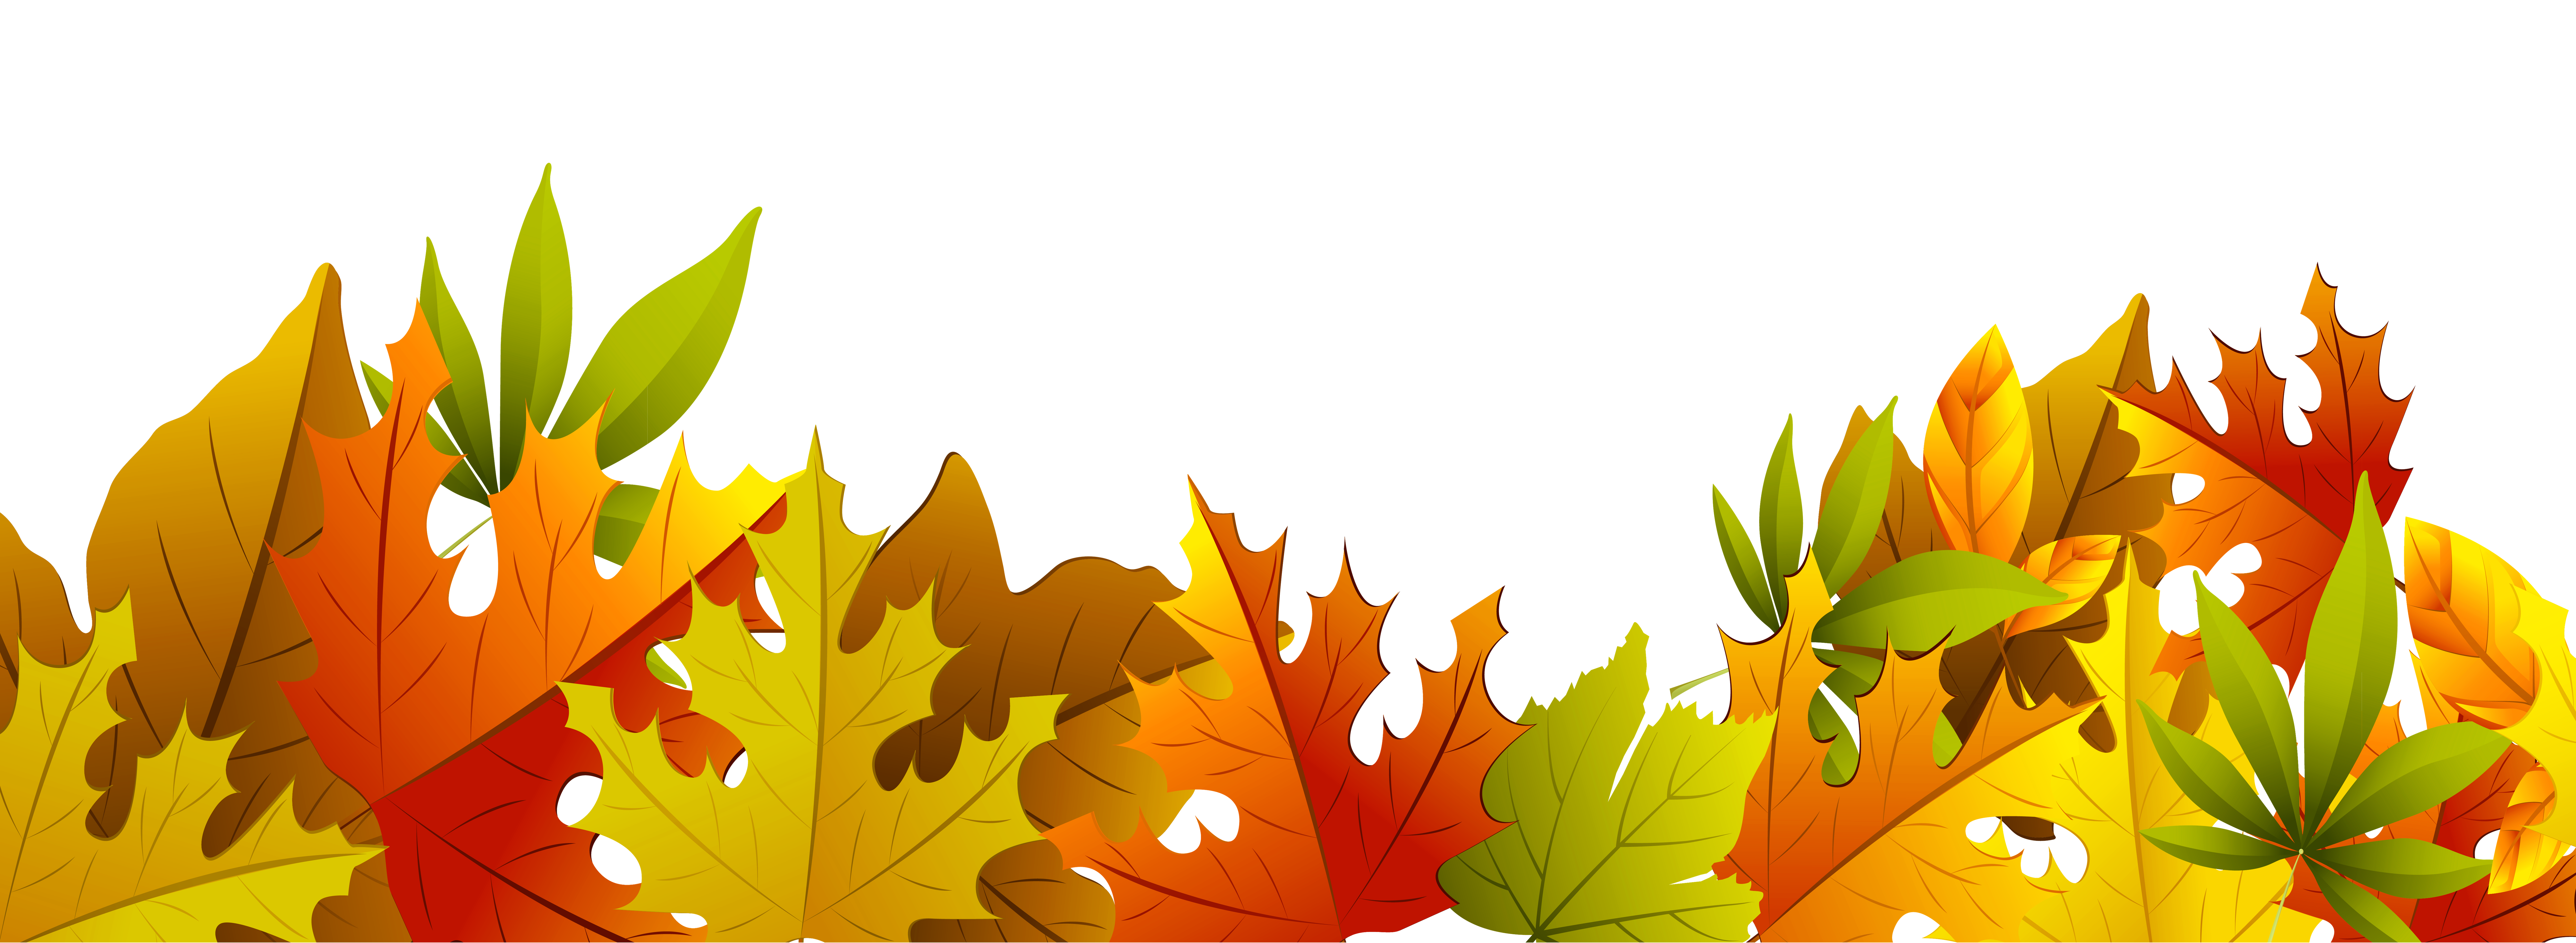 Decorative autumn leaves clipart